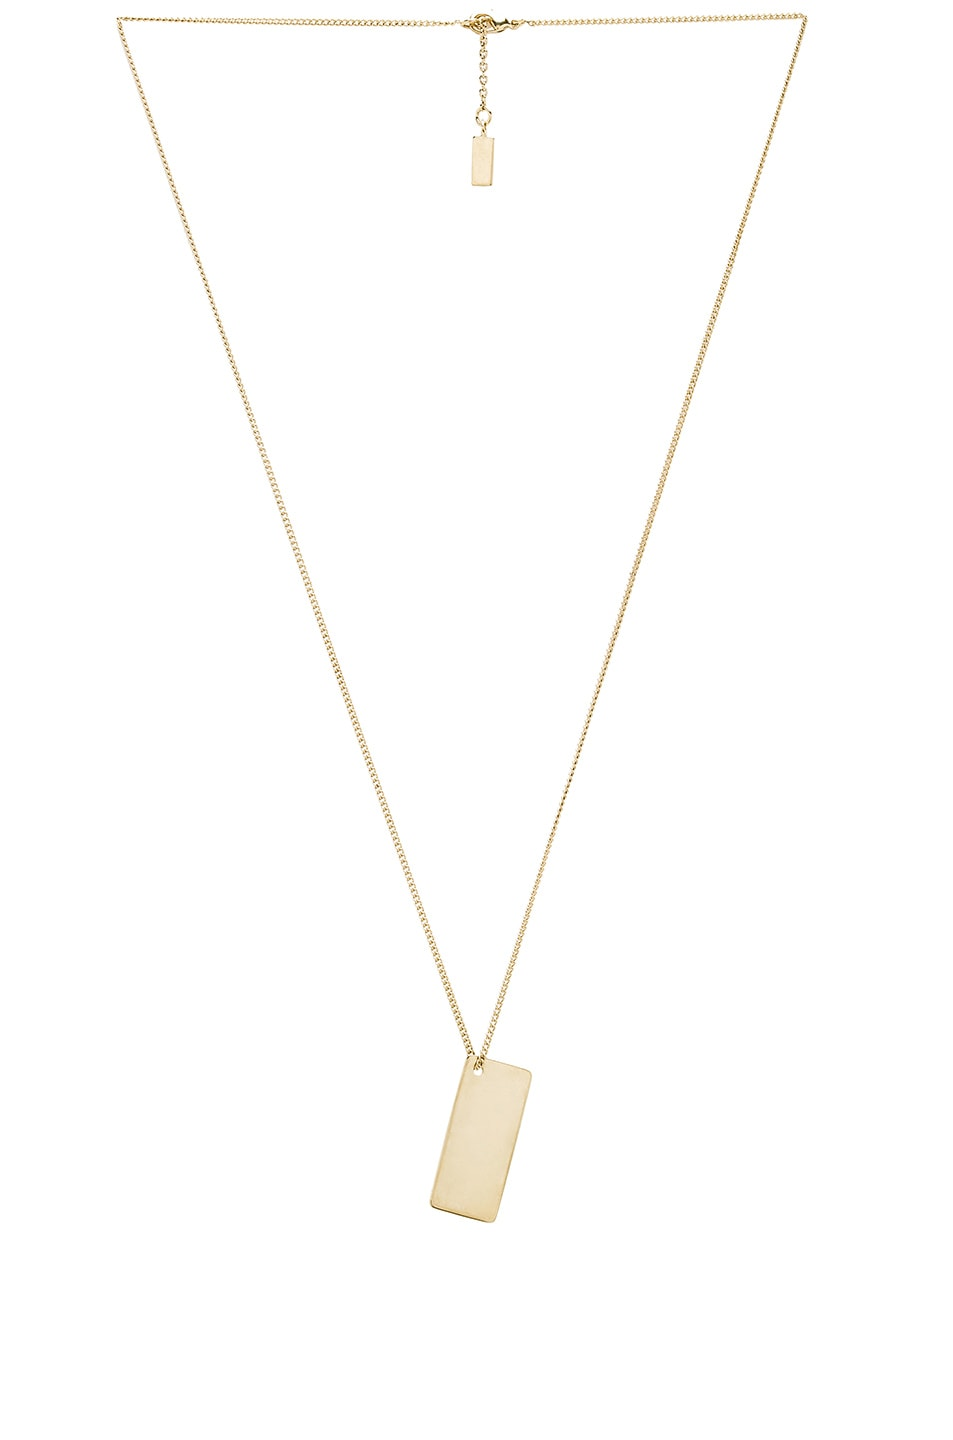 p gold turenne apc necklace a c women